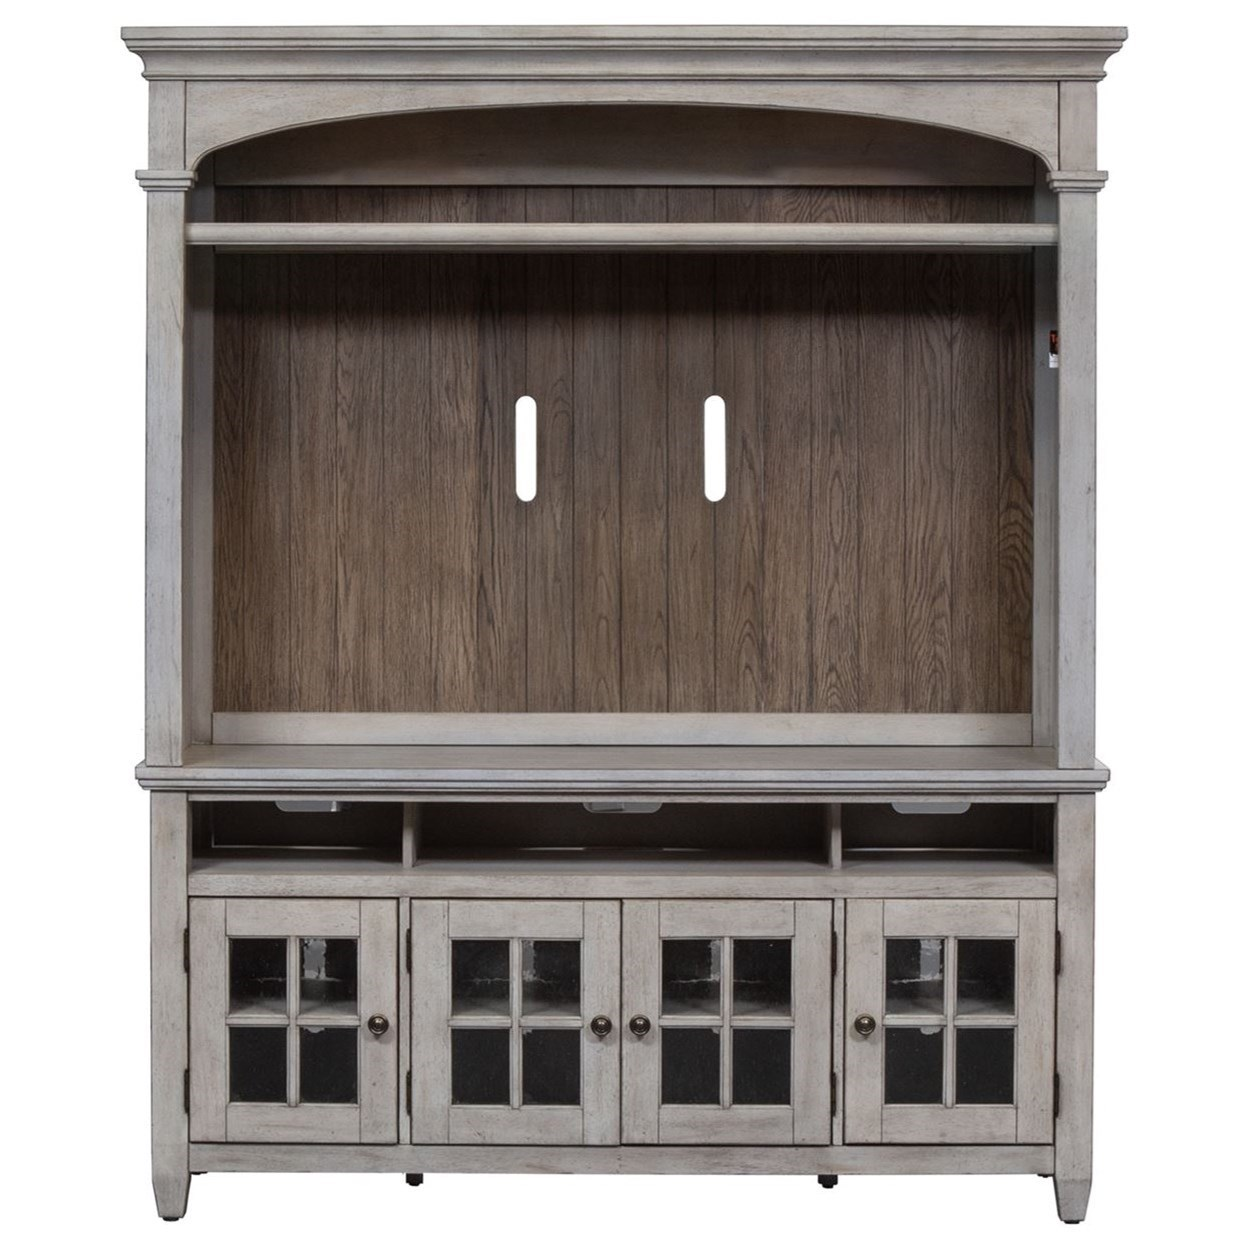 Heartland Entertainment Center by Liberty Furniture at Northeast Factory Direct